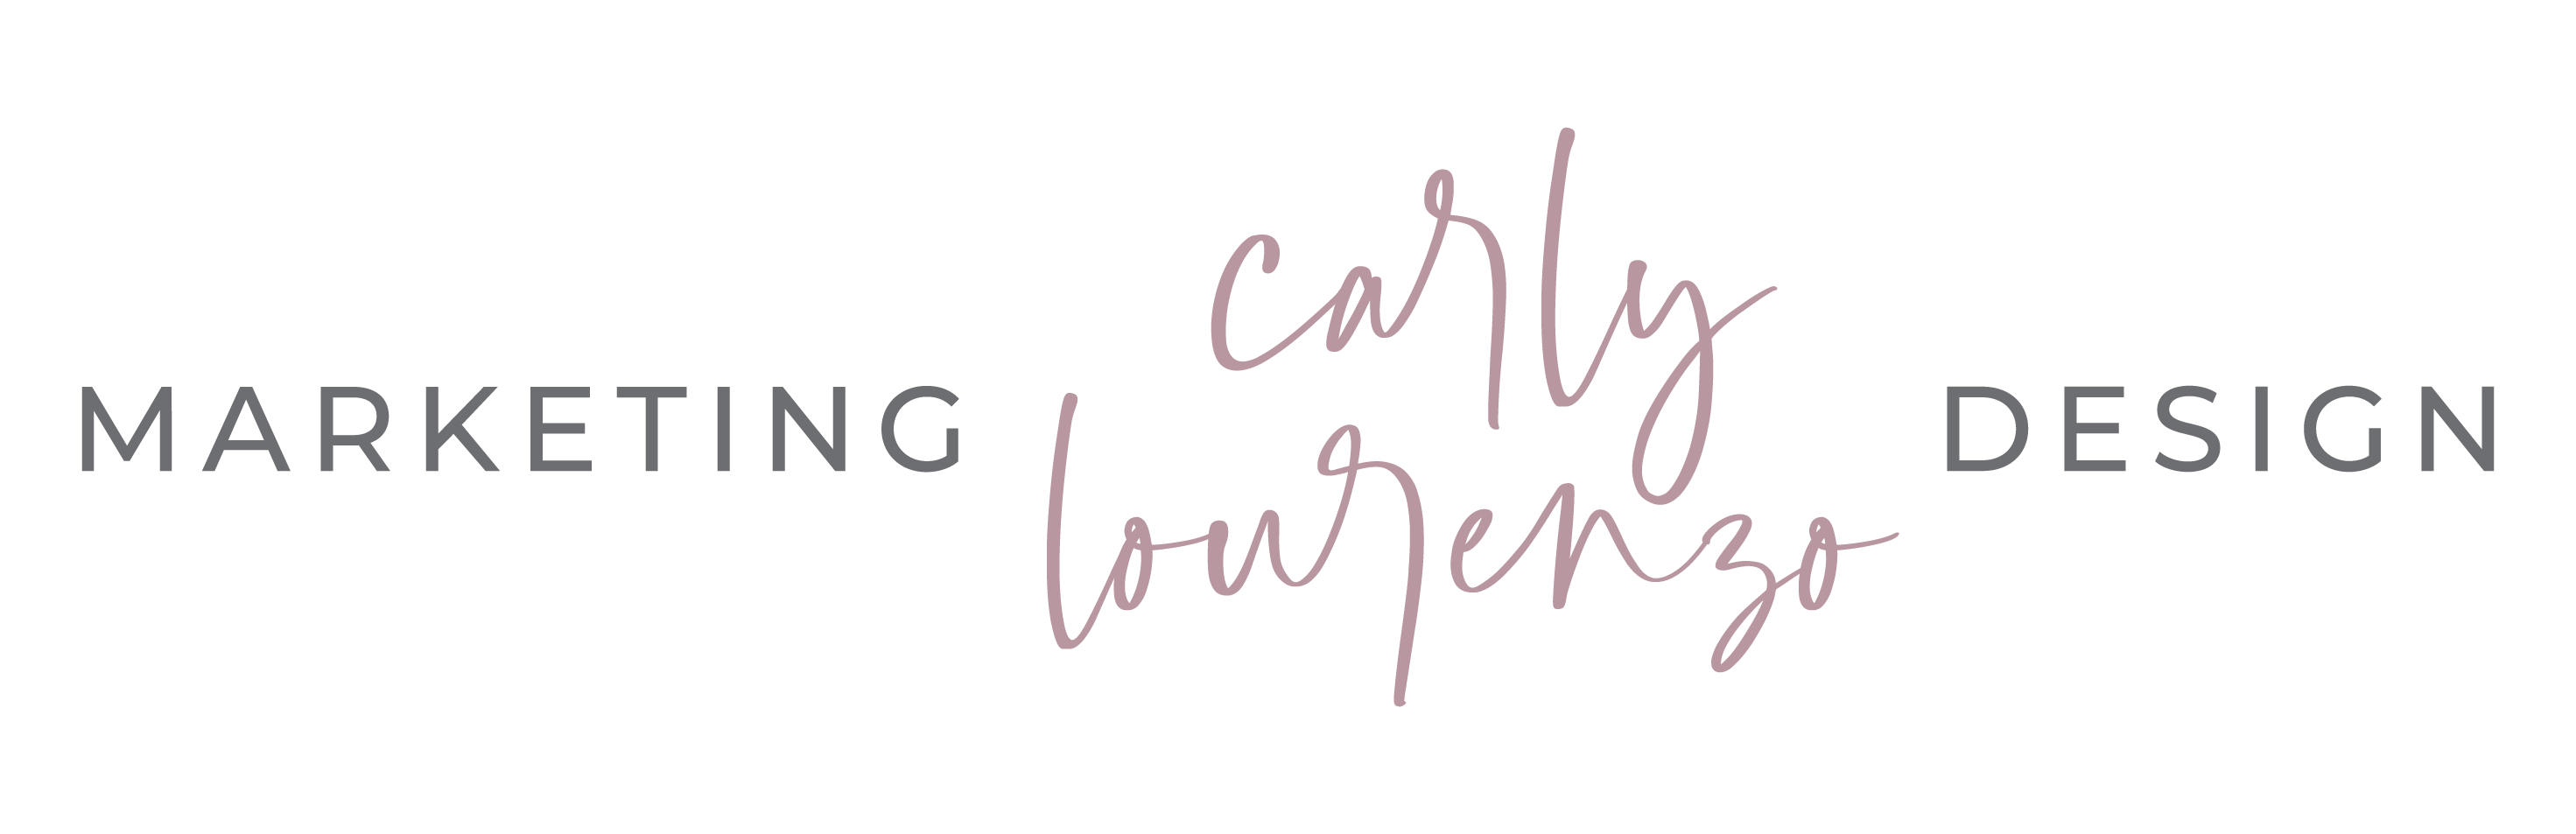 Carly Lourenzo Marketing & Design